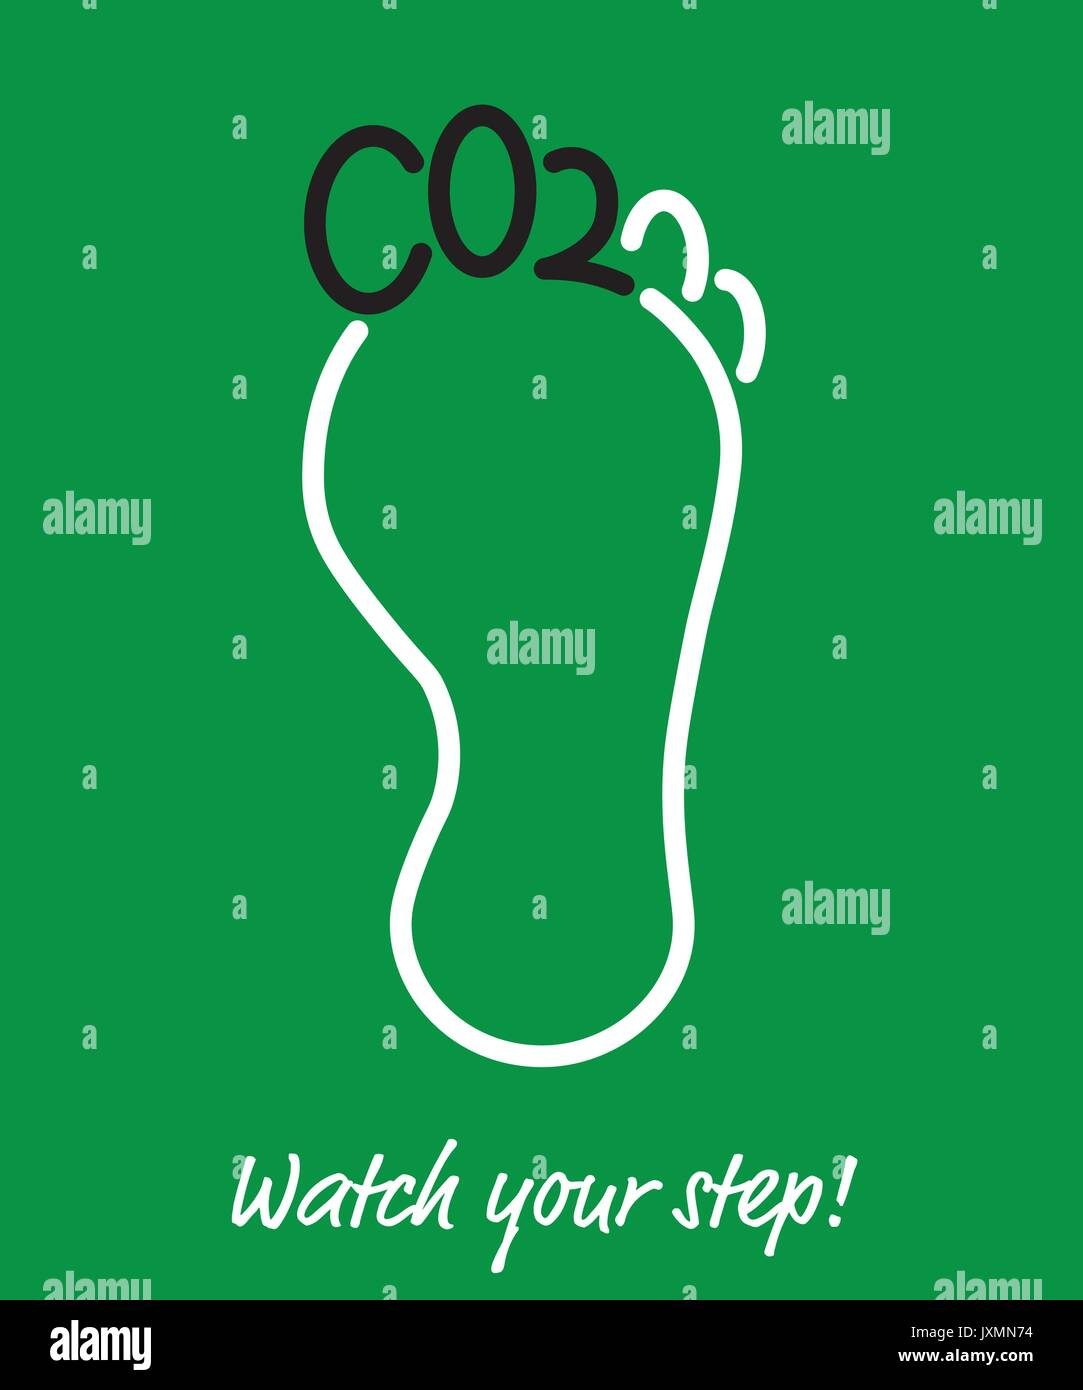 Carbon Footprint Poster, toes of foot shaped as letters CO2, short term for Carbon Dioxide - Stock Image